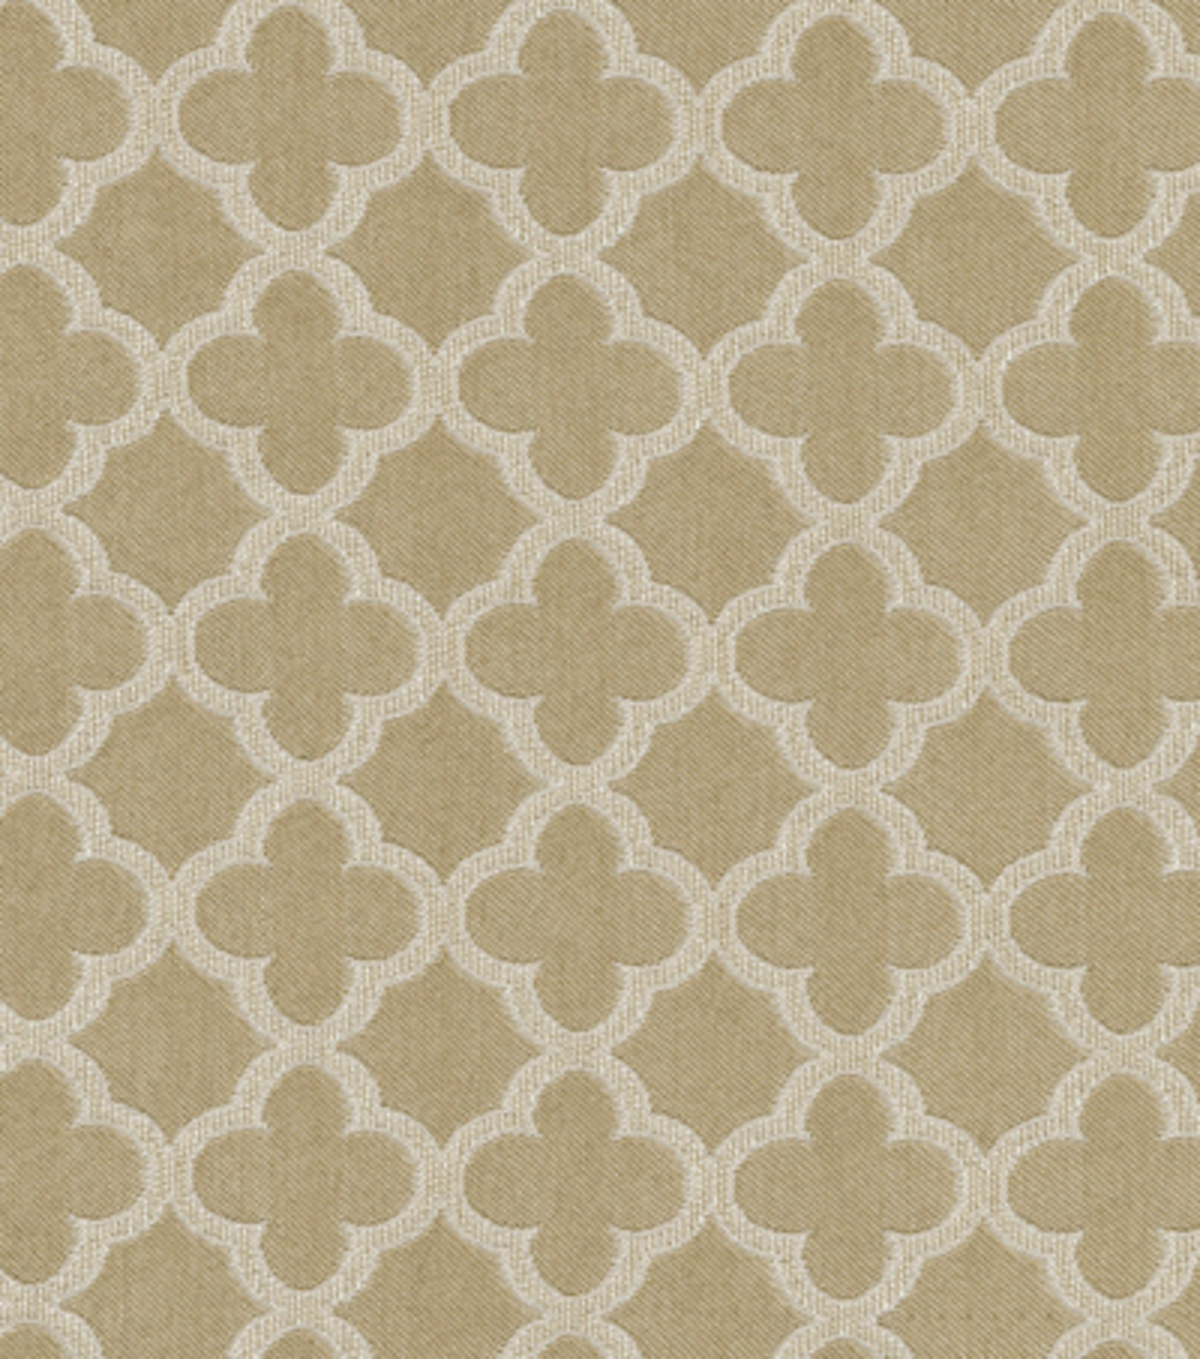 Home Decor 8\u0022x8\u0022 Fabric Swatch-Upholstery Fabric-Waverly Framework/Ironstone